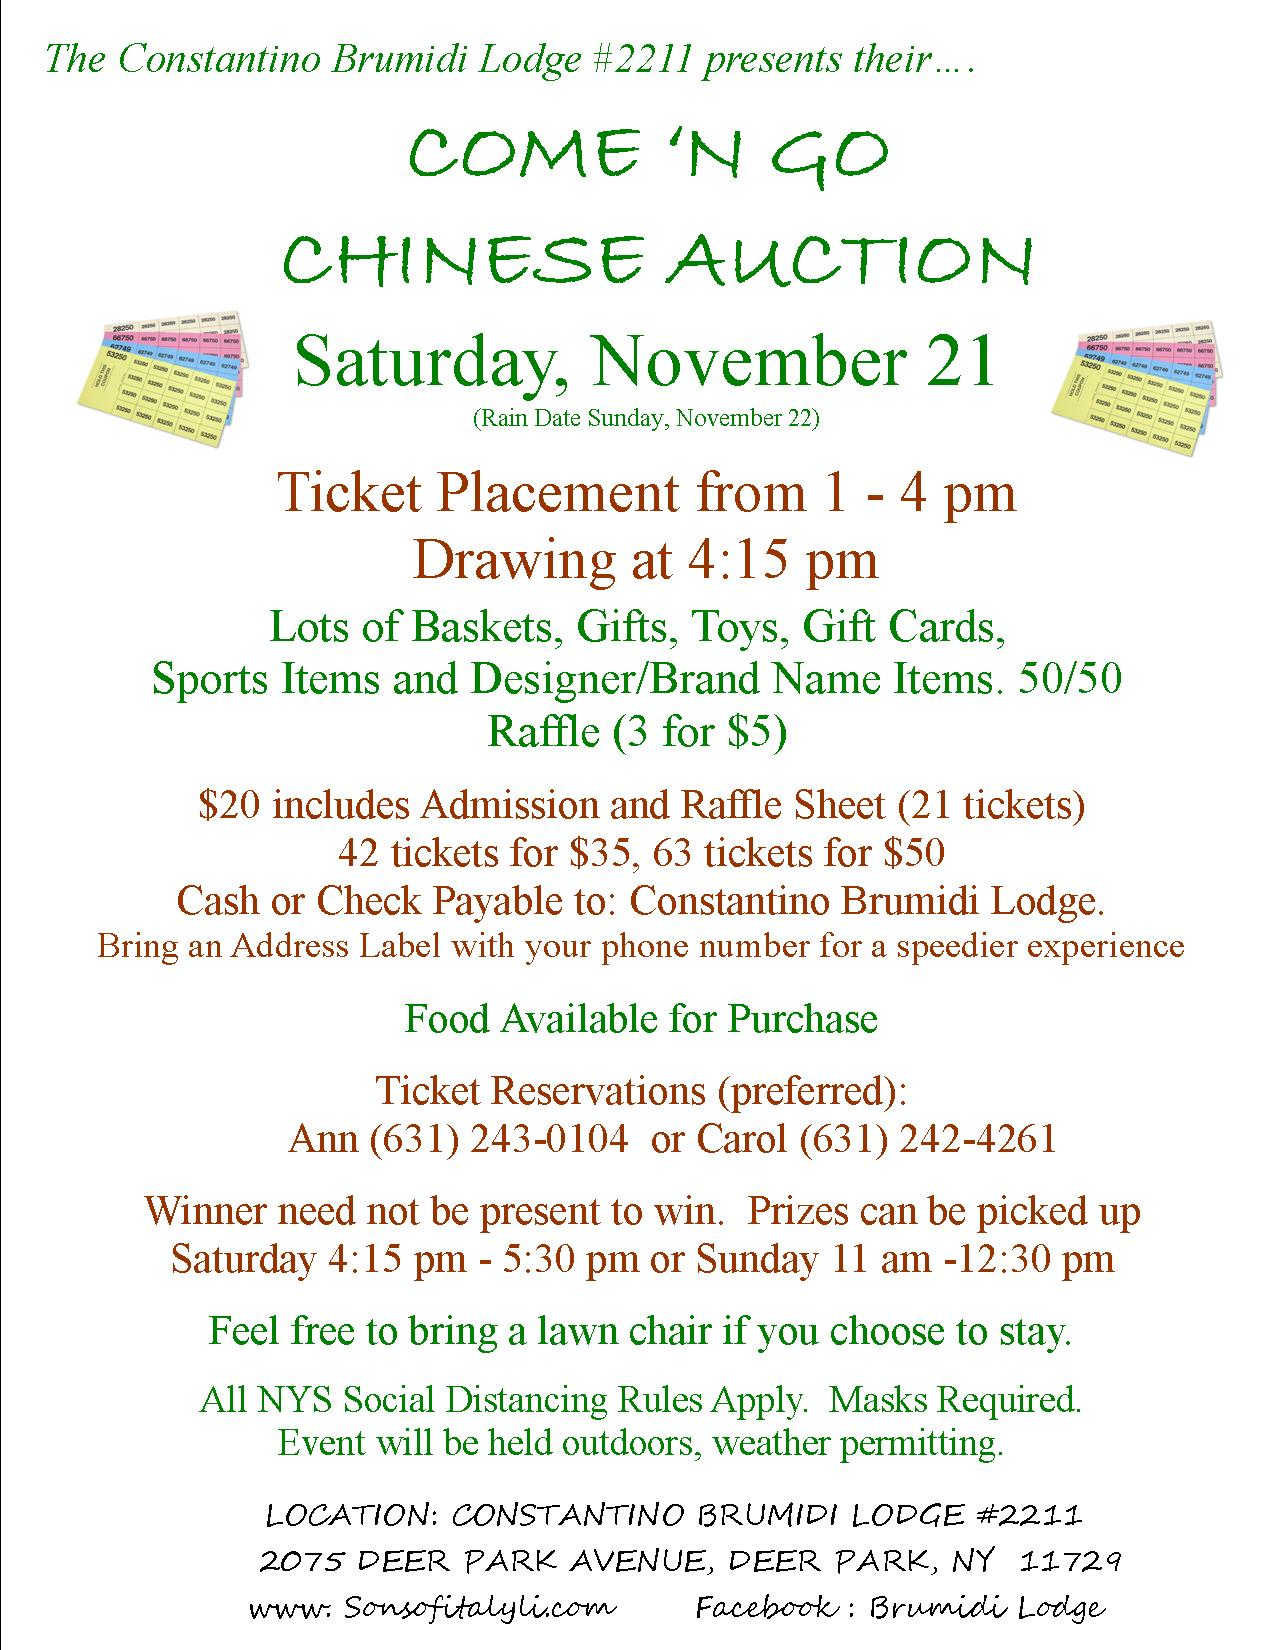 Chinese Auction 2020 Flyer